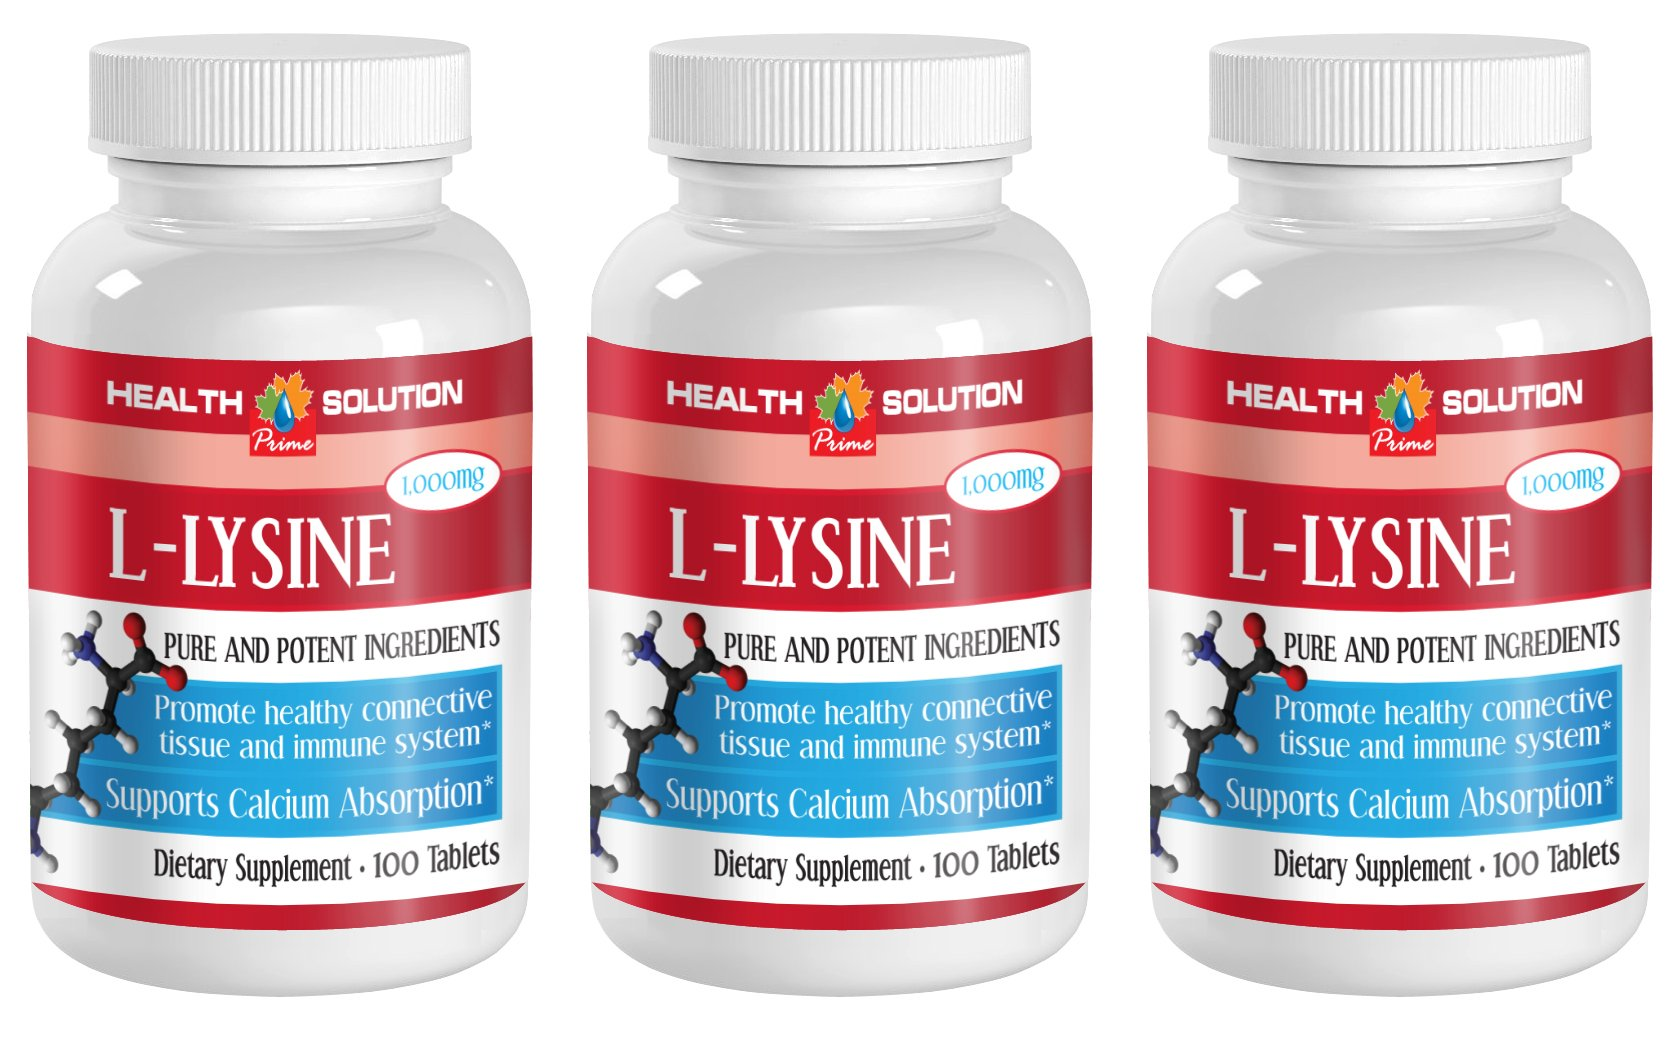 Fat Loss Pills for Men - L-LYSINE 1000MG - Pure and Potent Ingredients - l-lysine Bulk Powder - 3 Bottles (300 Tablets)